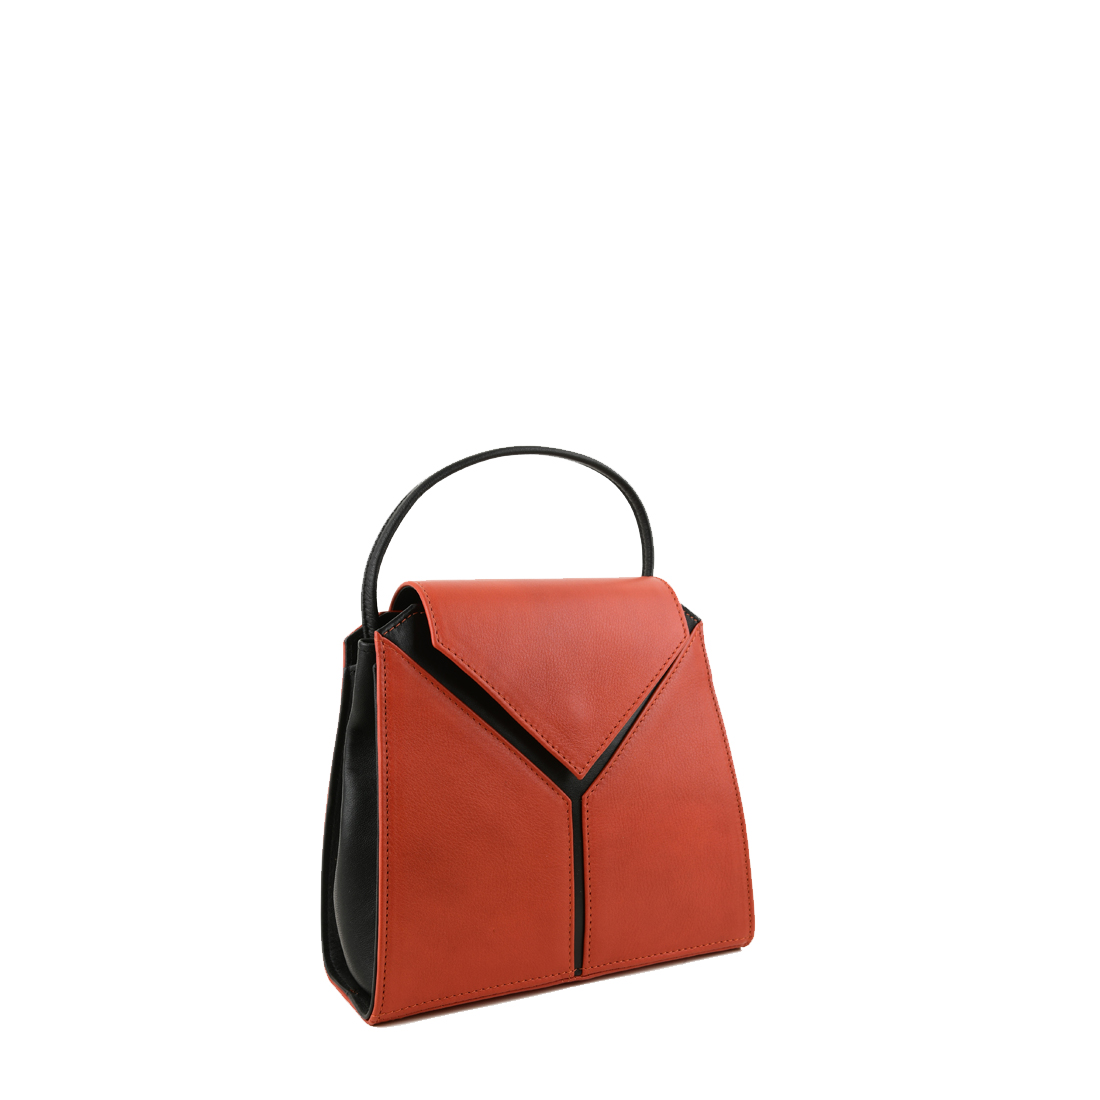 Yasmin Burnt orange Leather Evening Shoulder Bag